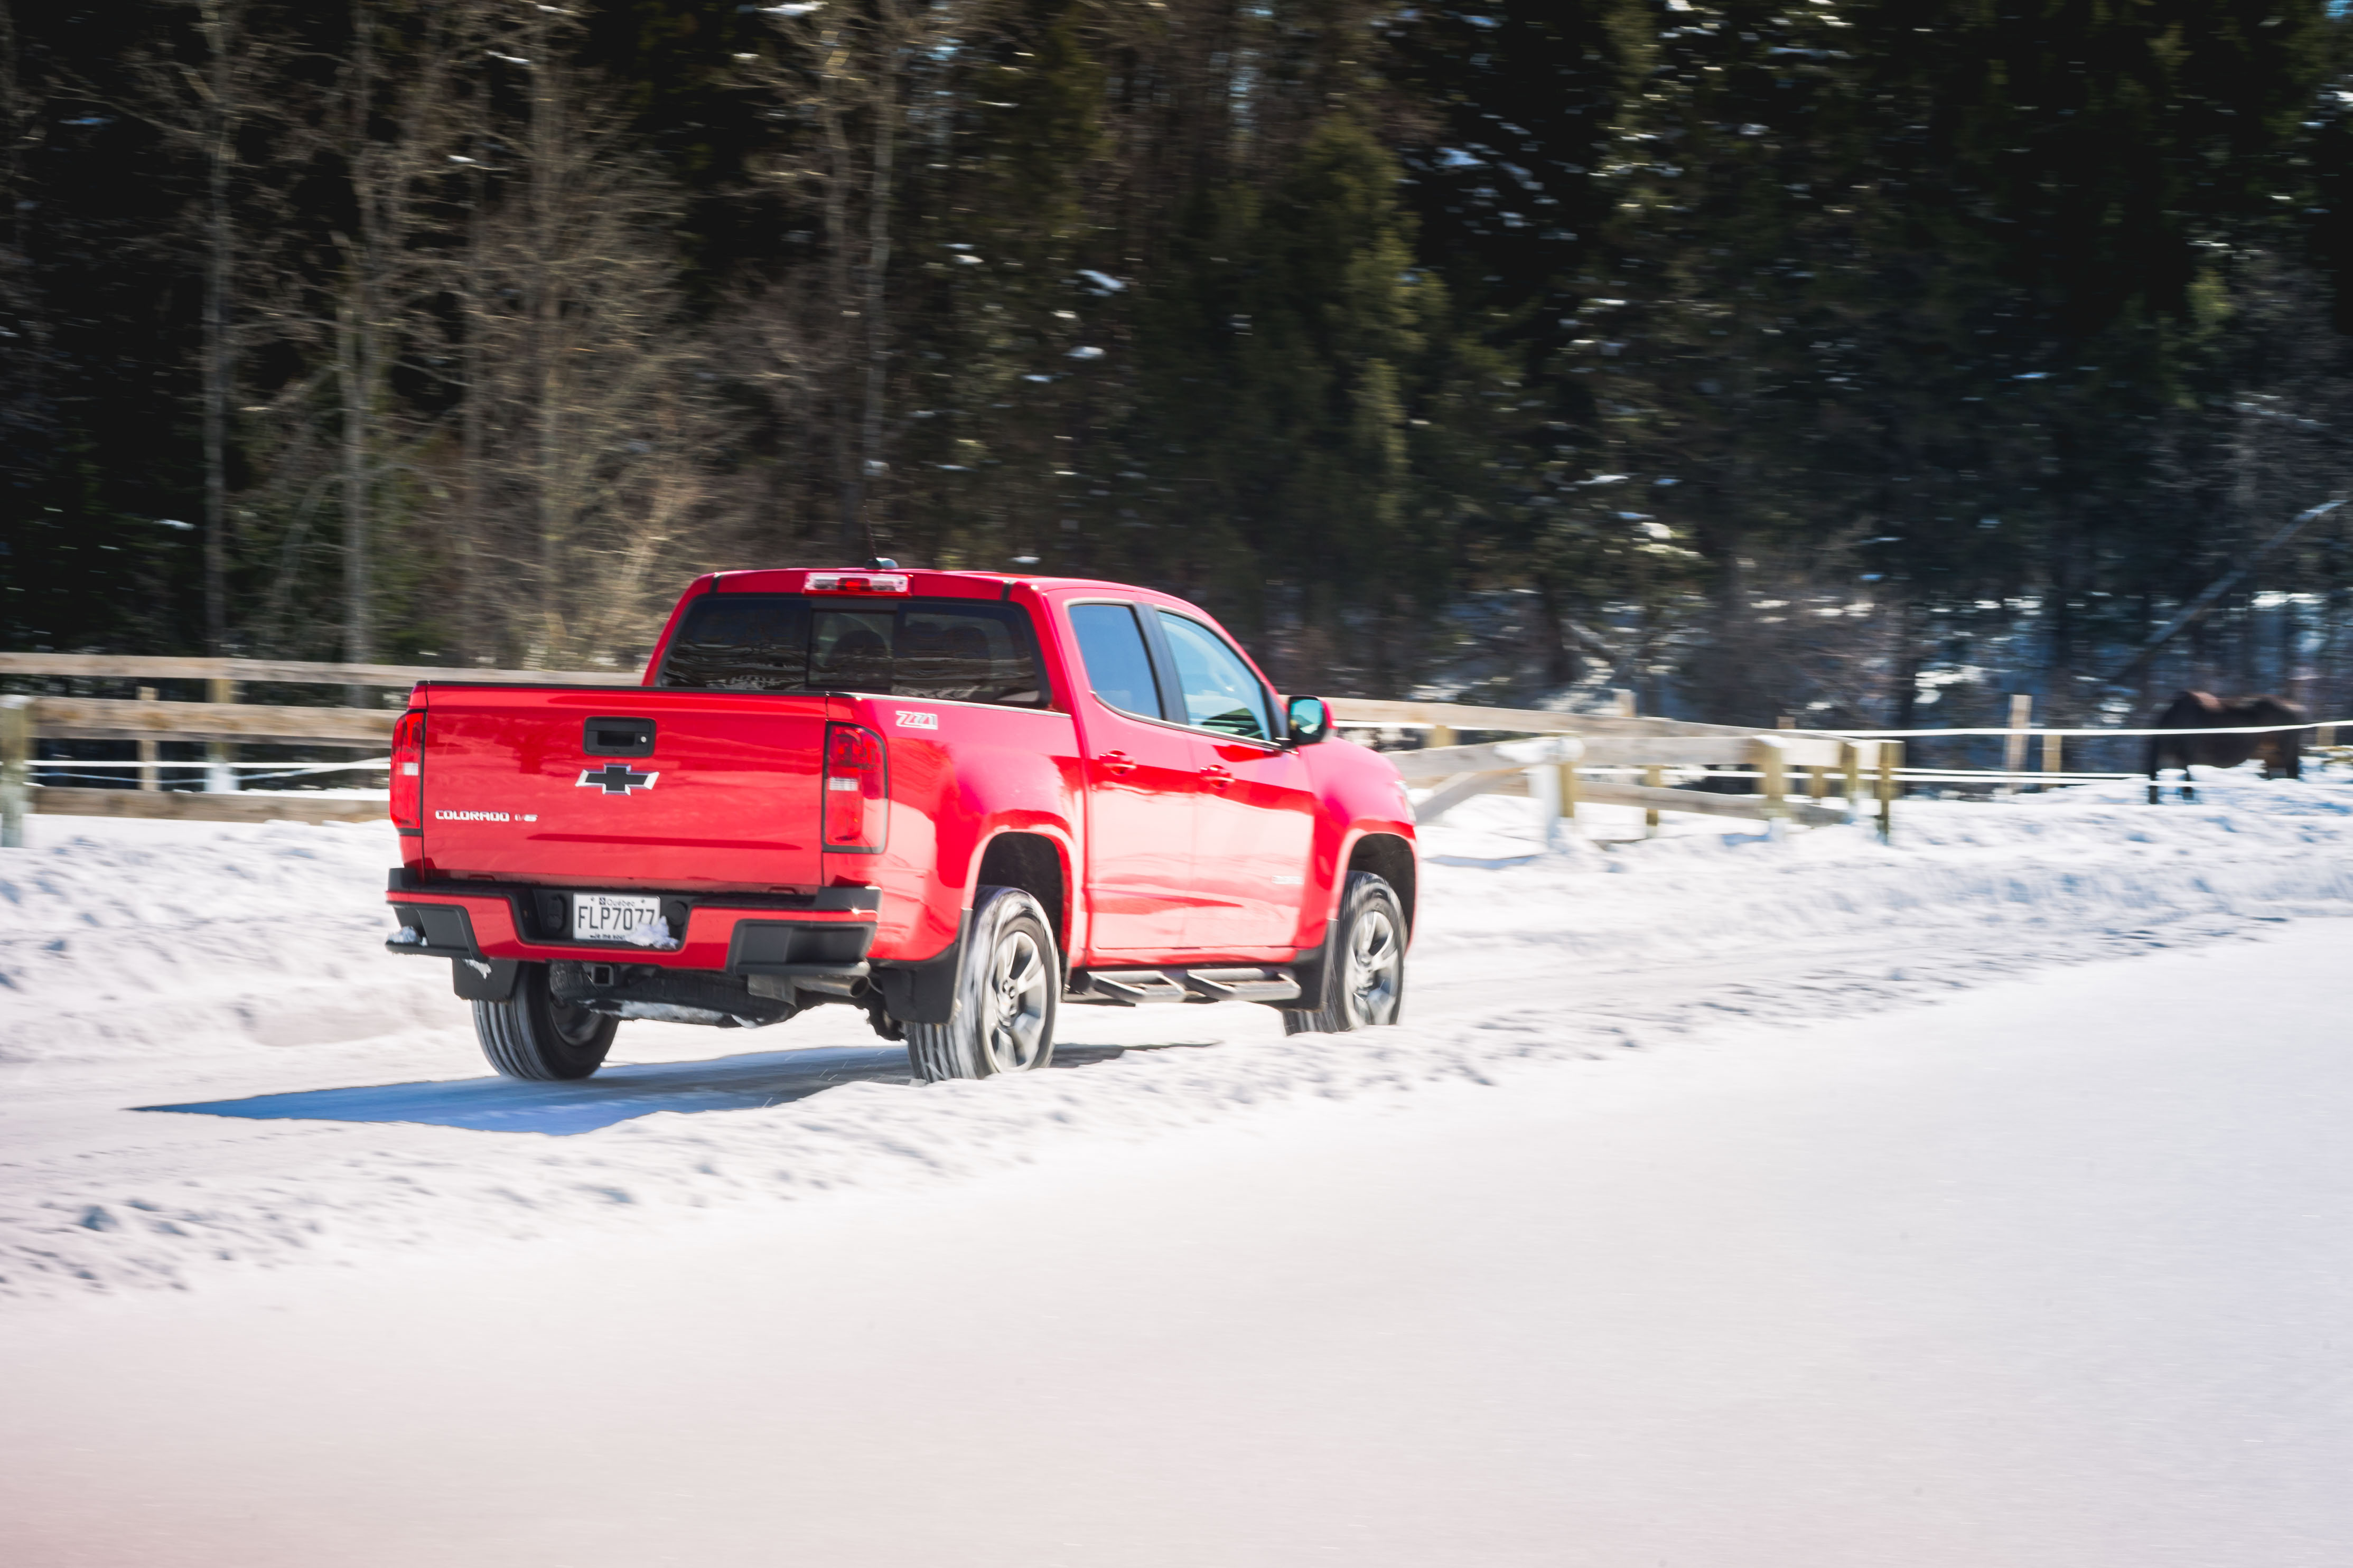 2017 Chevrolet Colorado Z71: Small Doesn't Mean Without Nerve